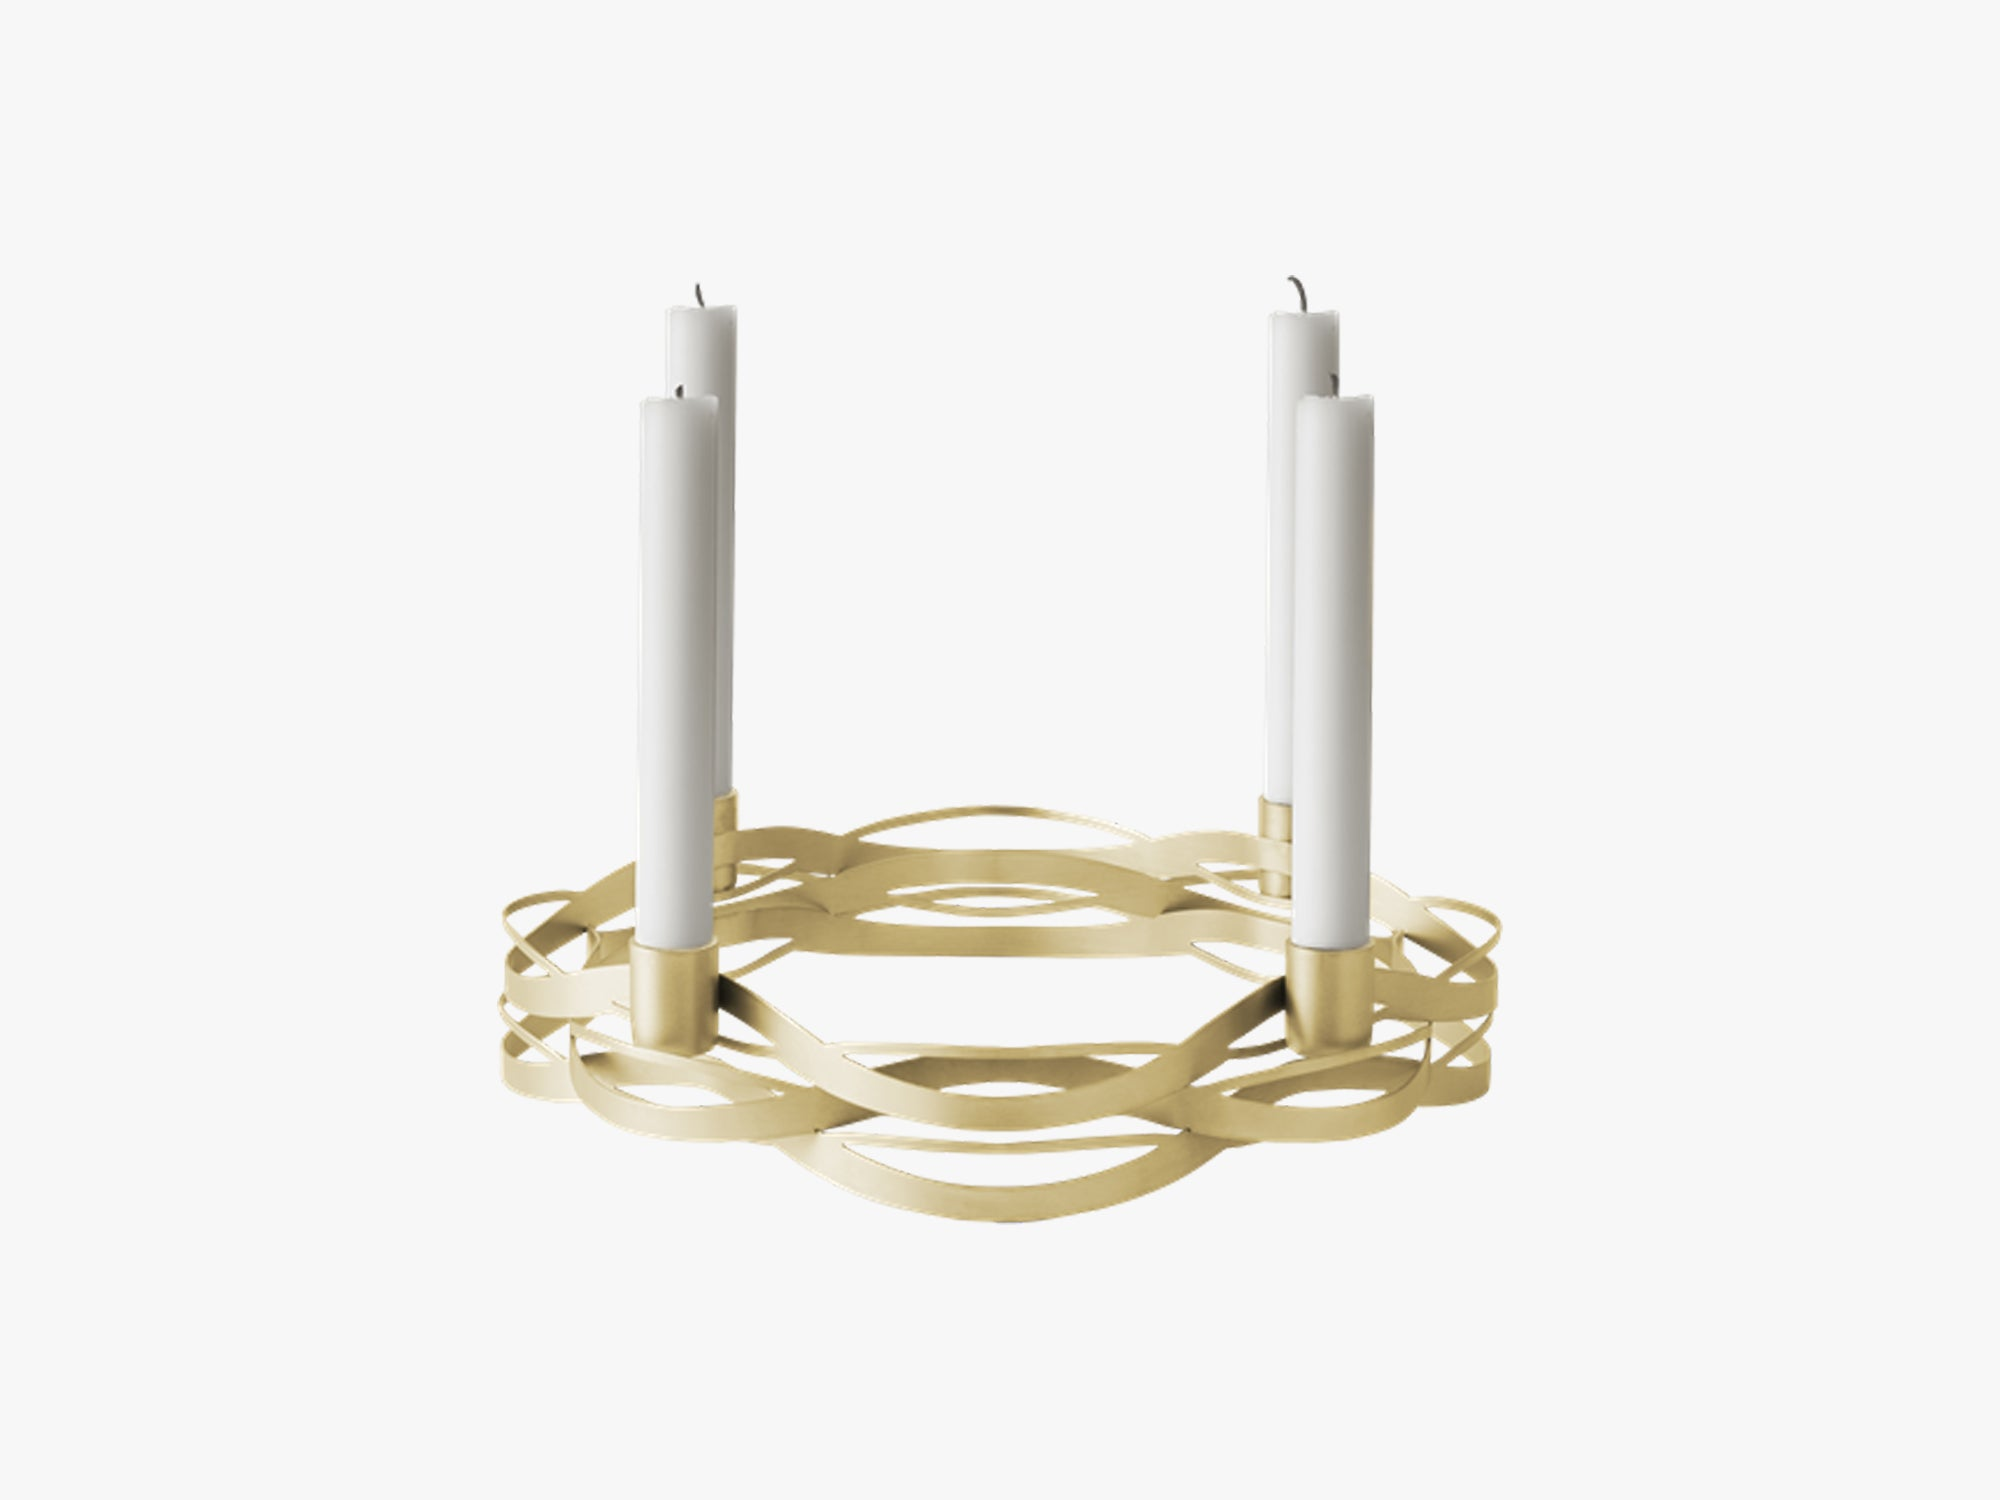 Tangle adventsstage fra Stelton